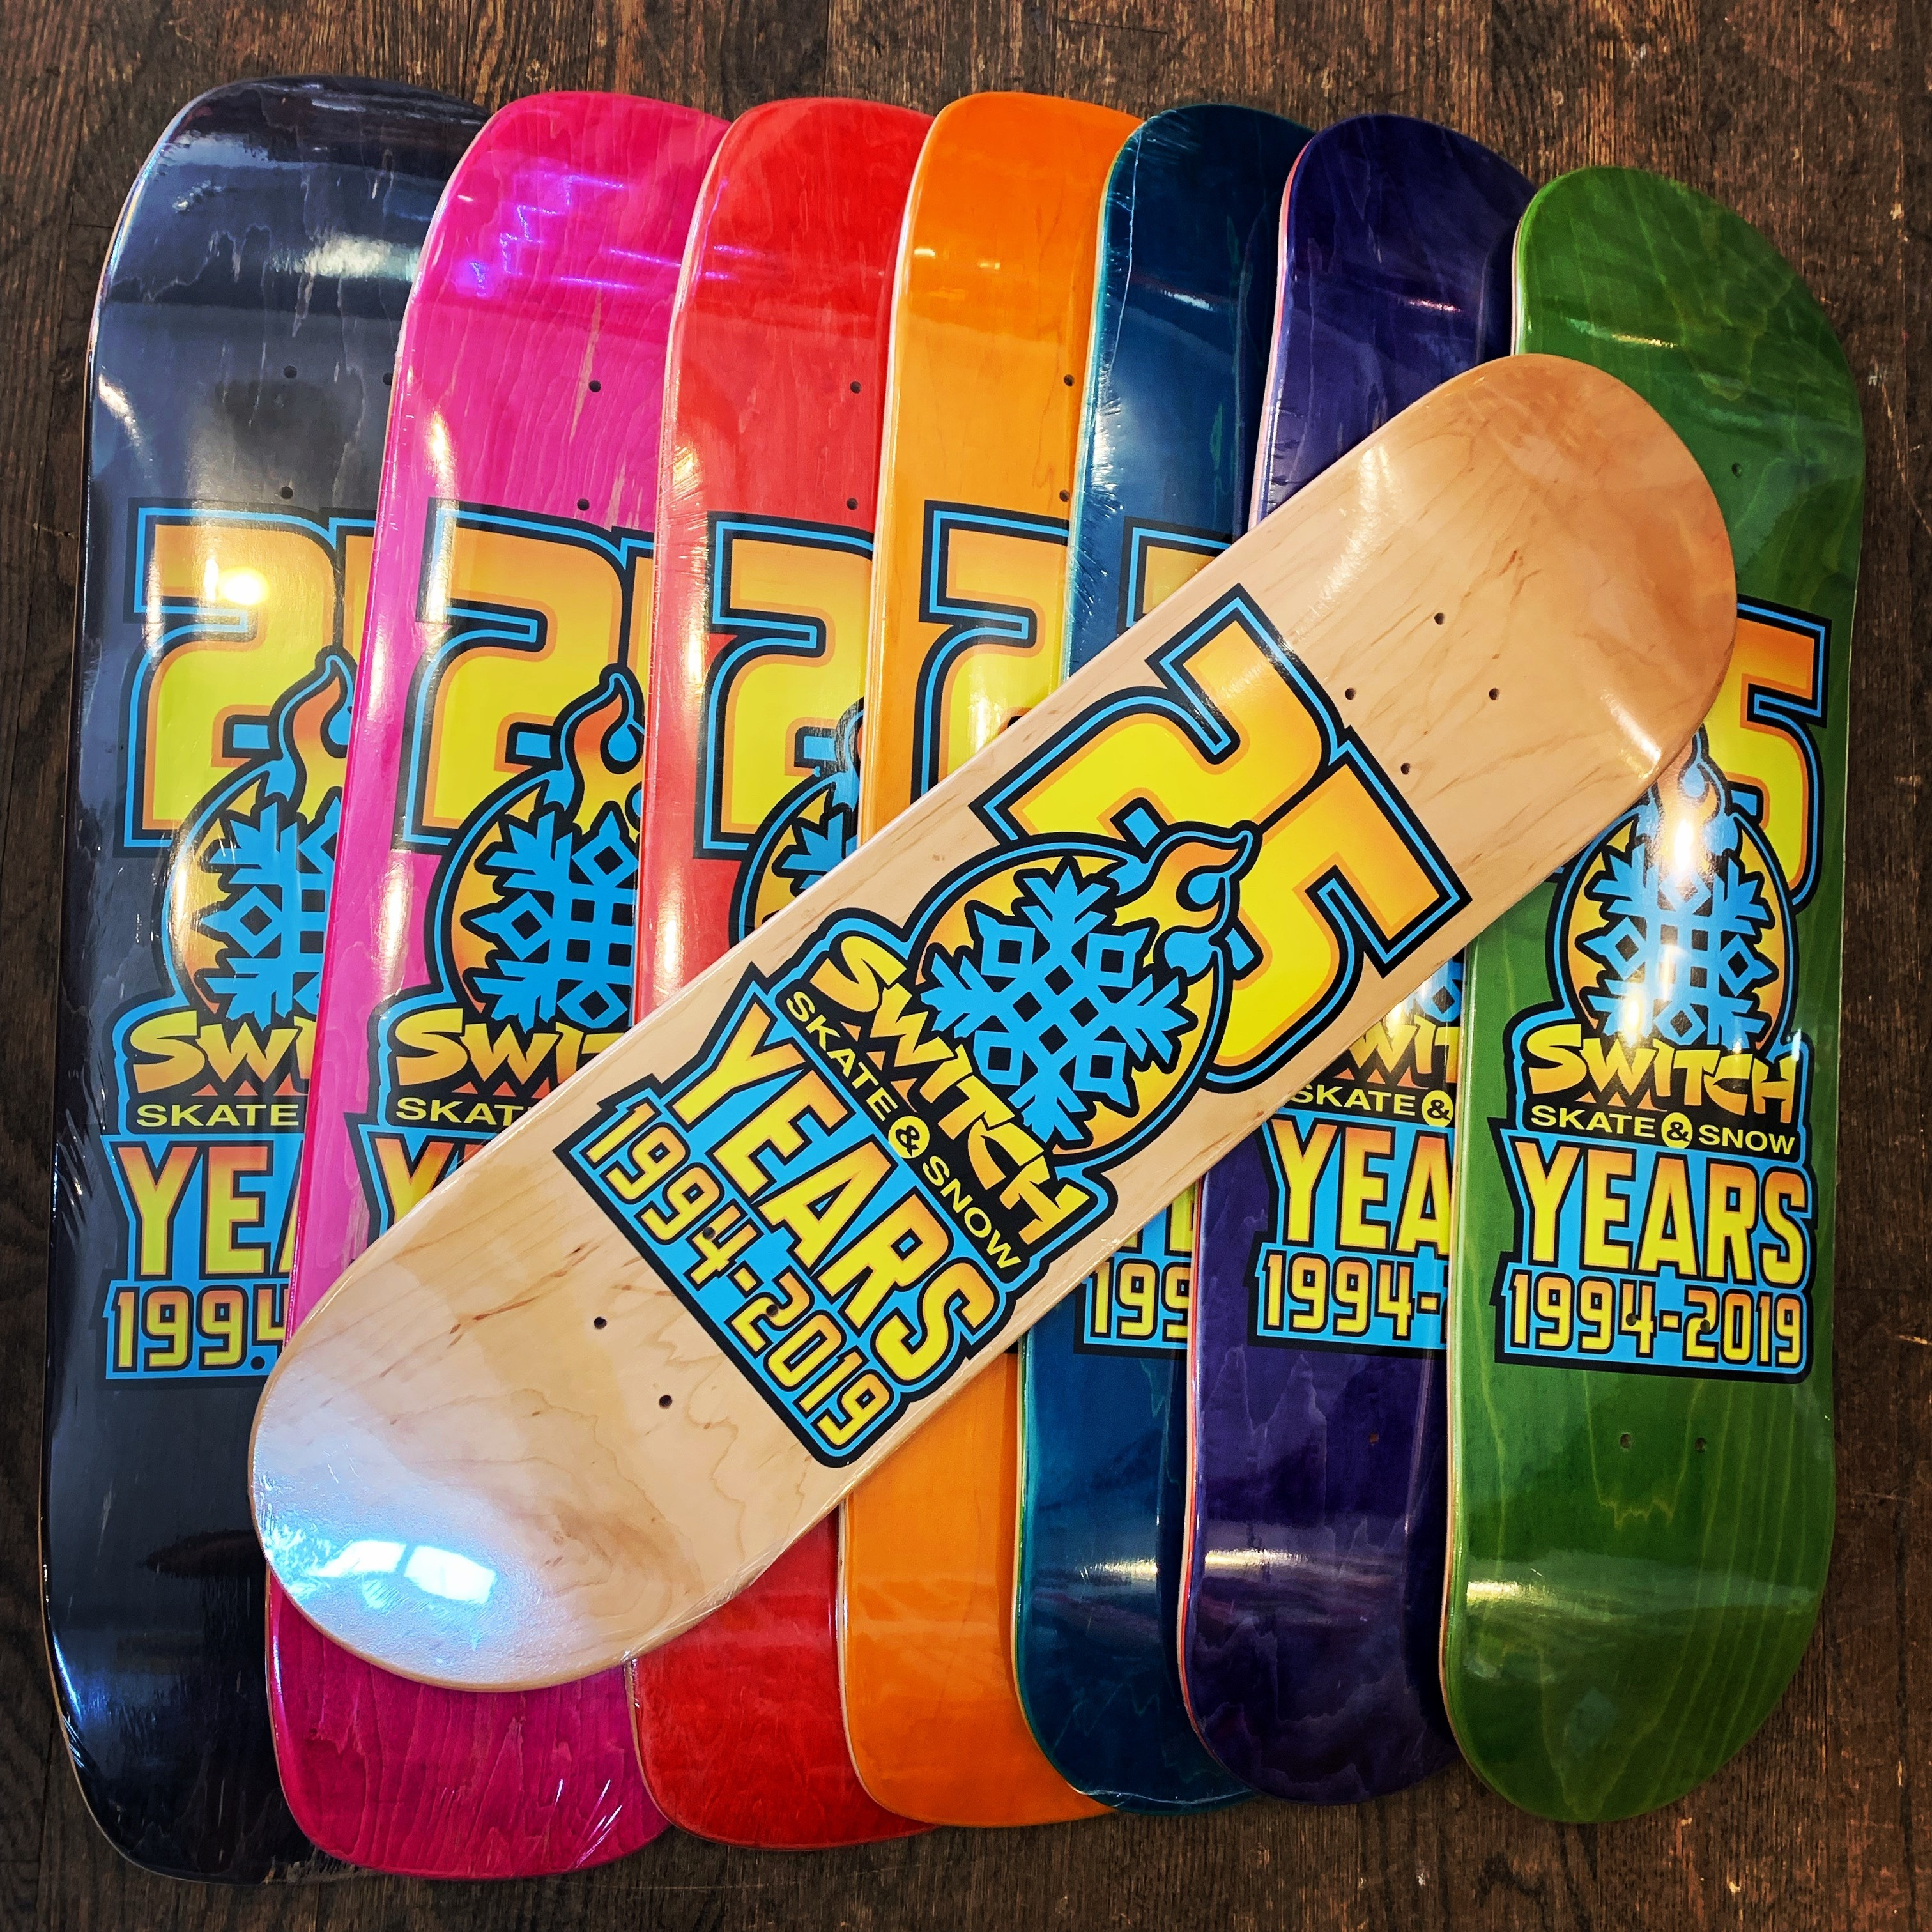 25th Year Anniversary Deck